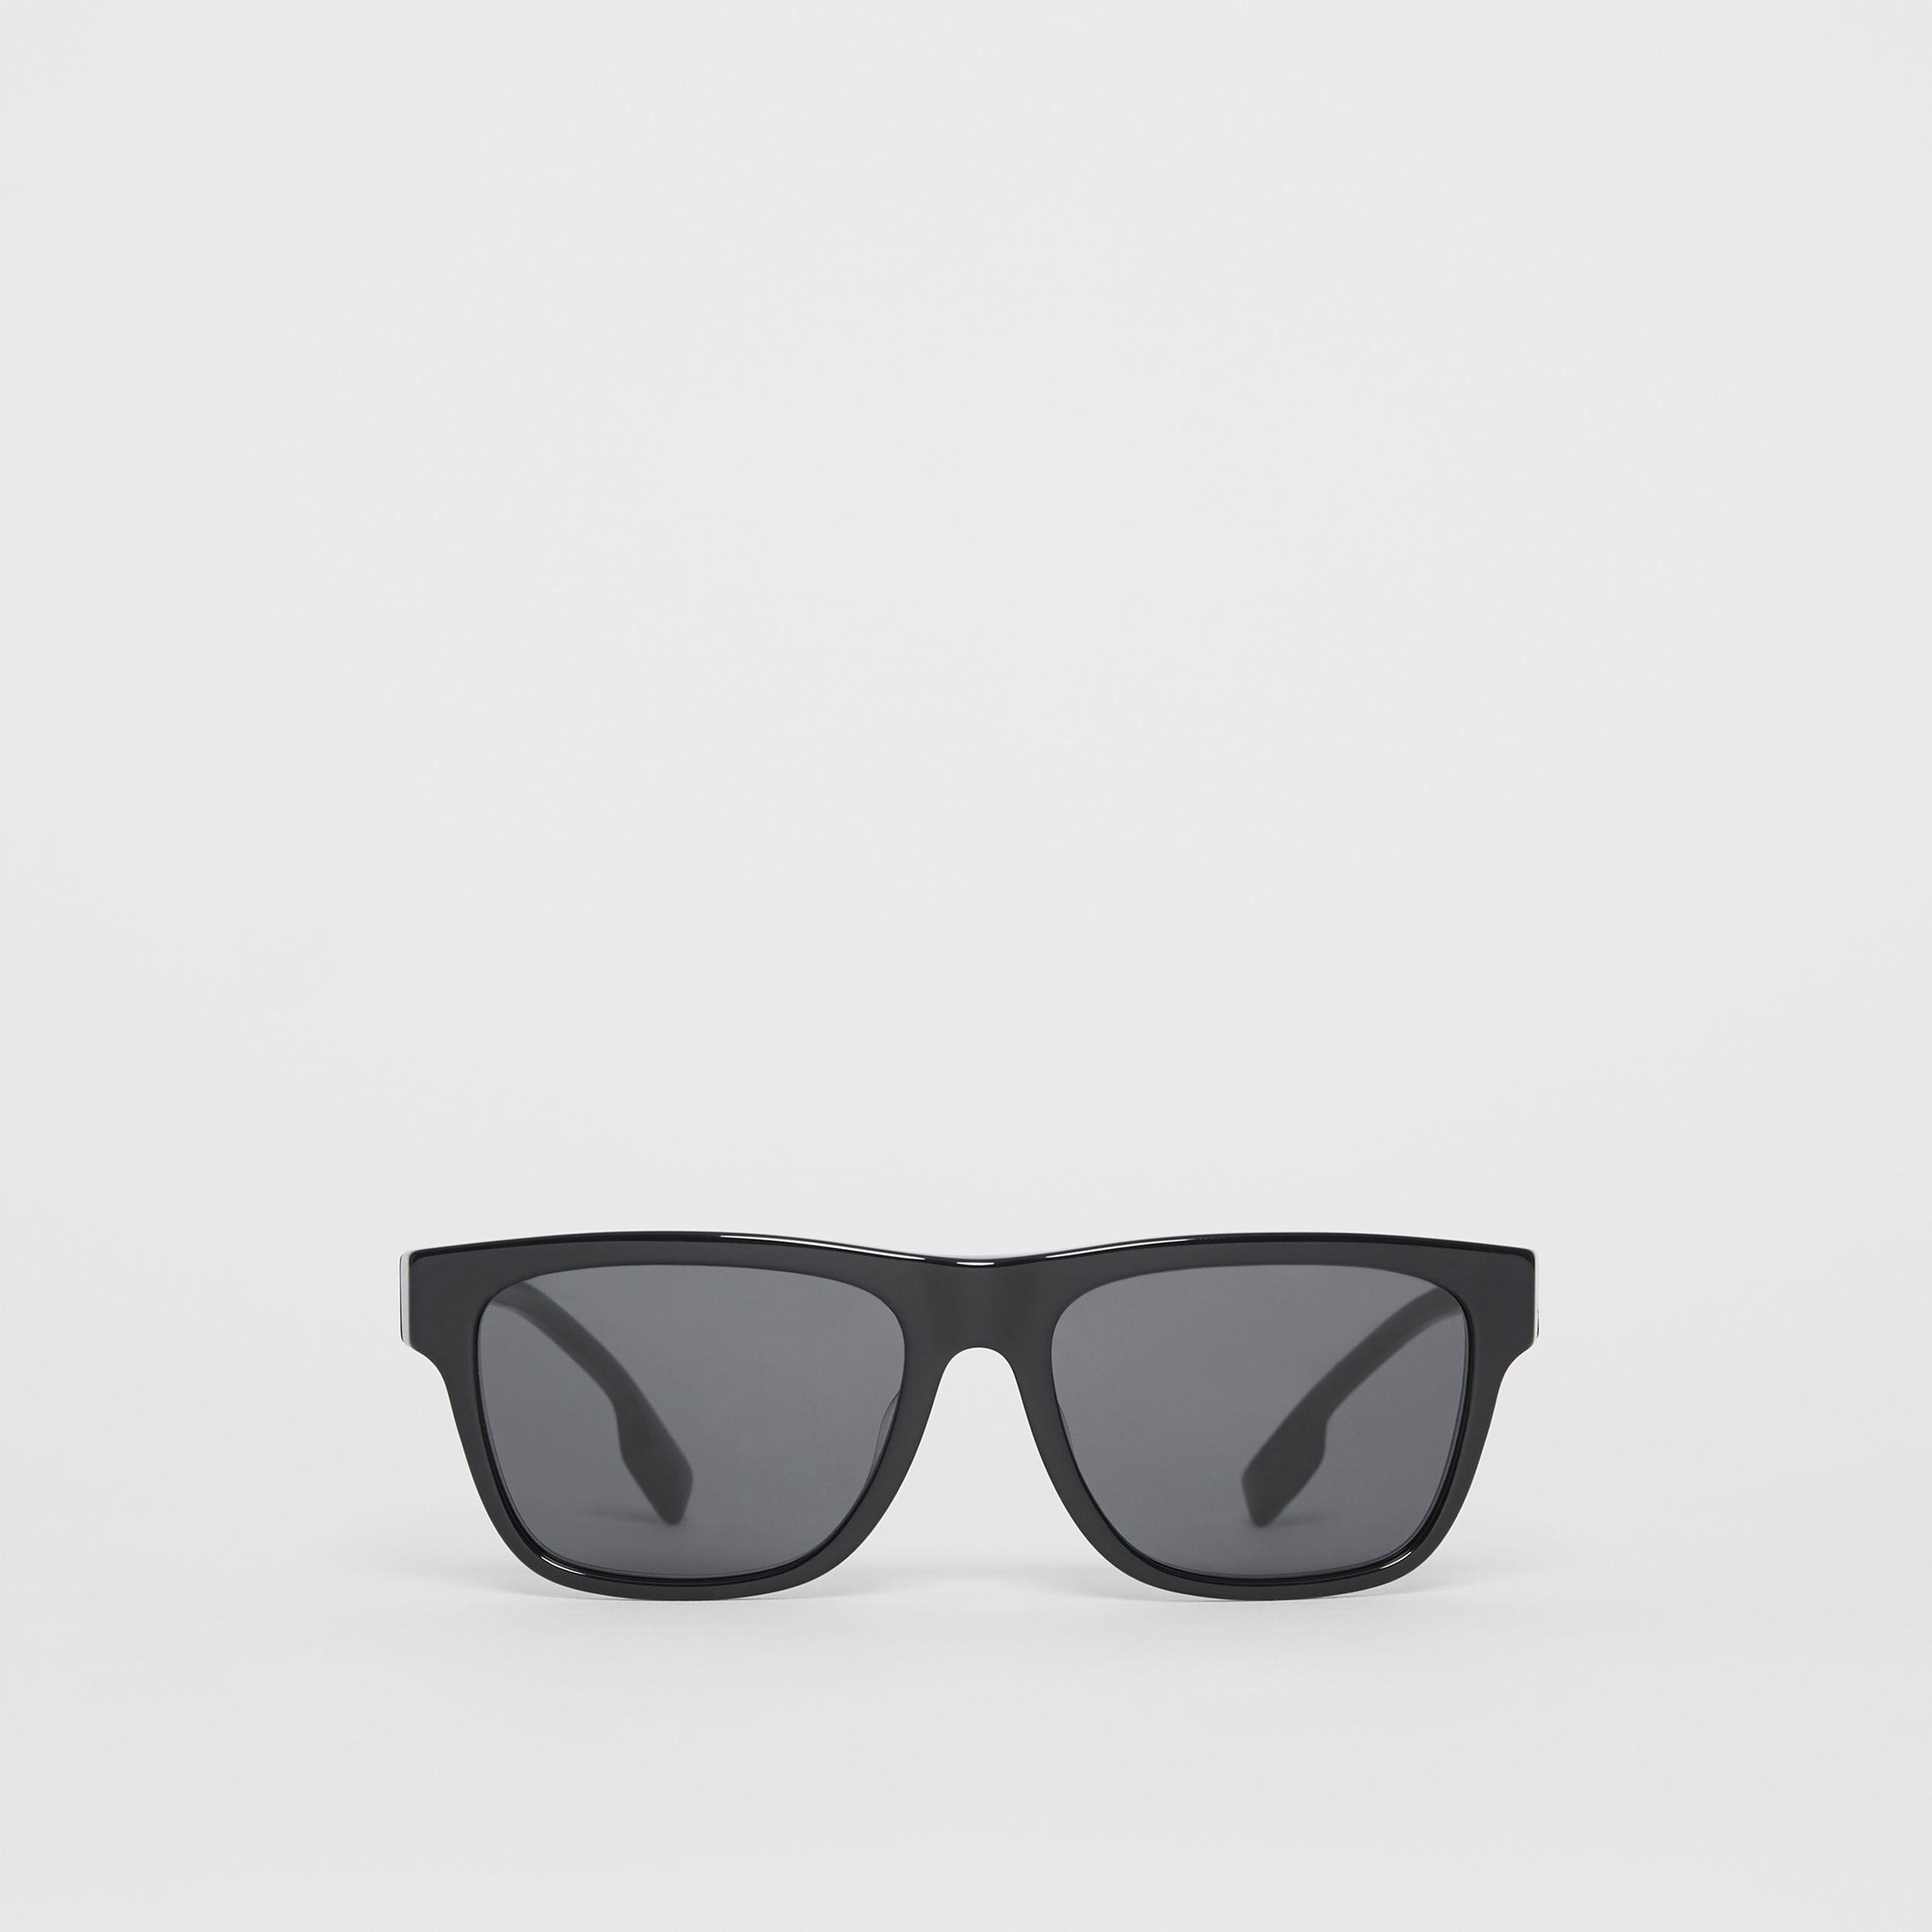 Square Frame Sunglasses in Black - Men | Burberry - 1